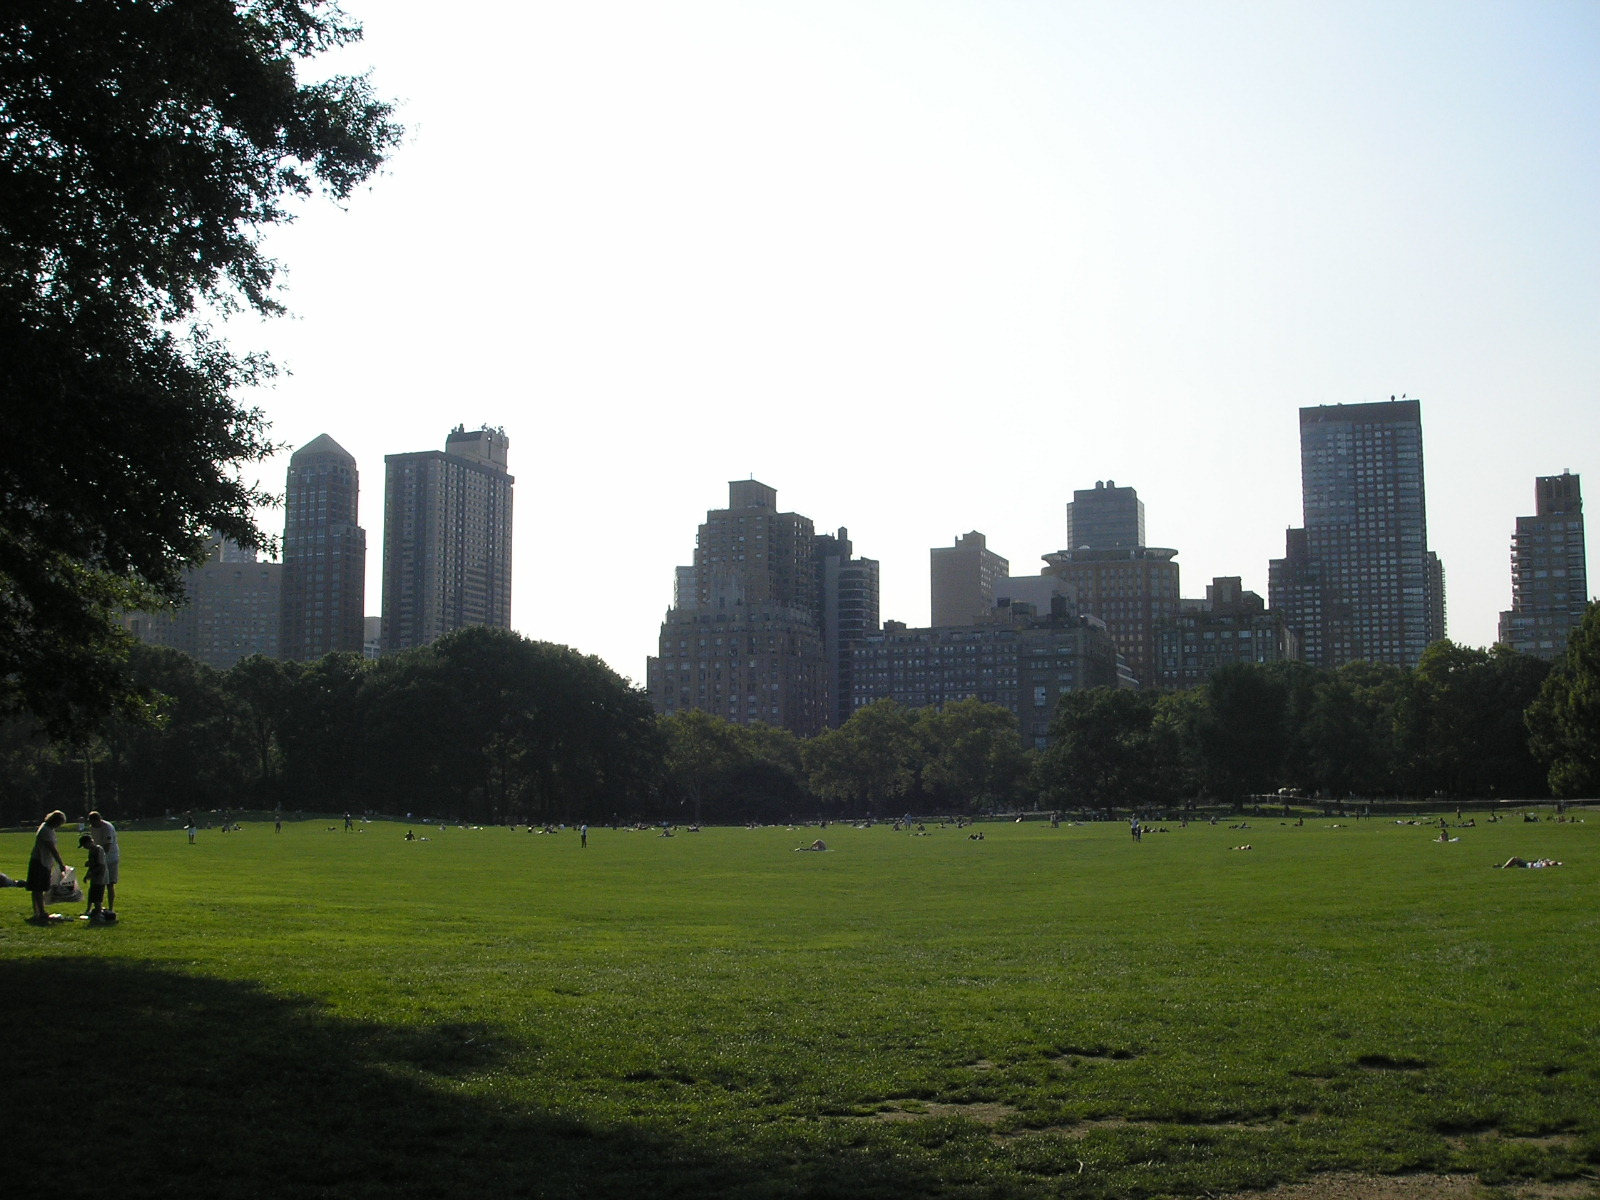 The Sheep Meadow in Central Park, New York Cit...